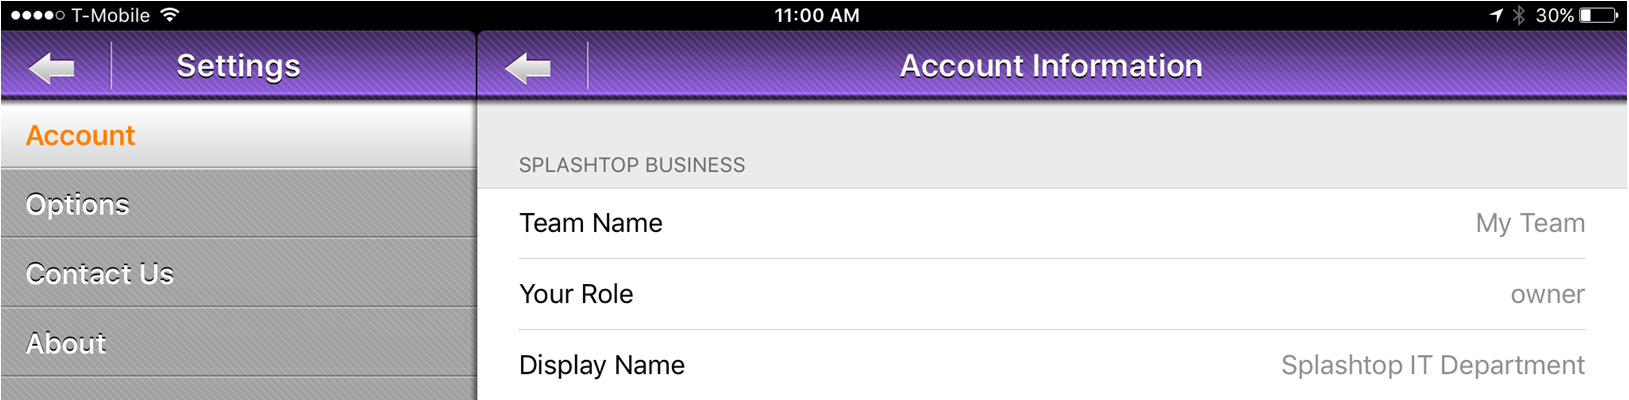 Managers can view the account settings and check the access granted team members